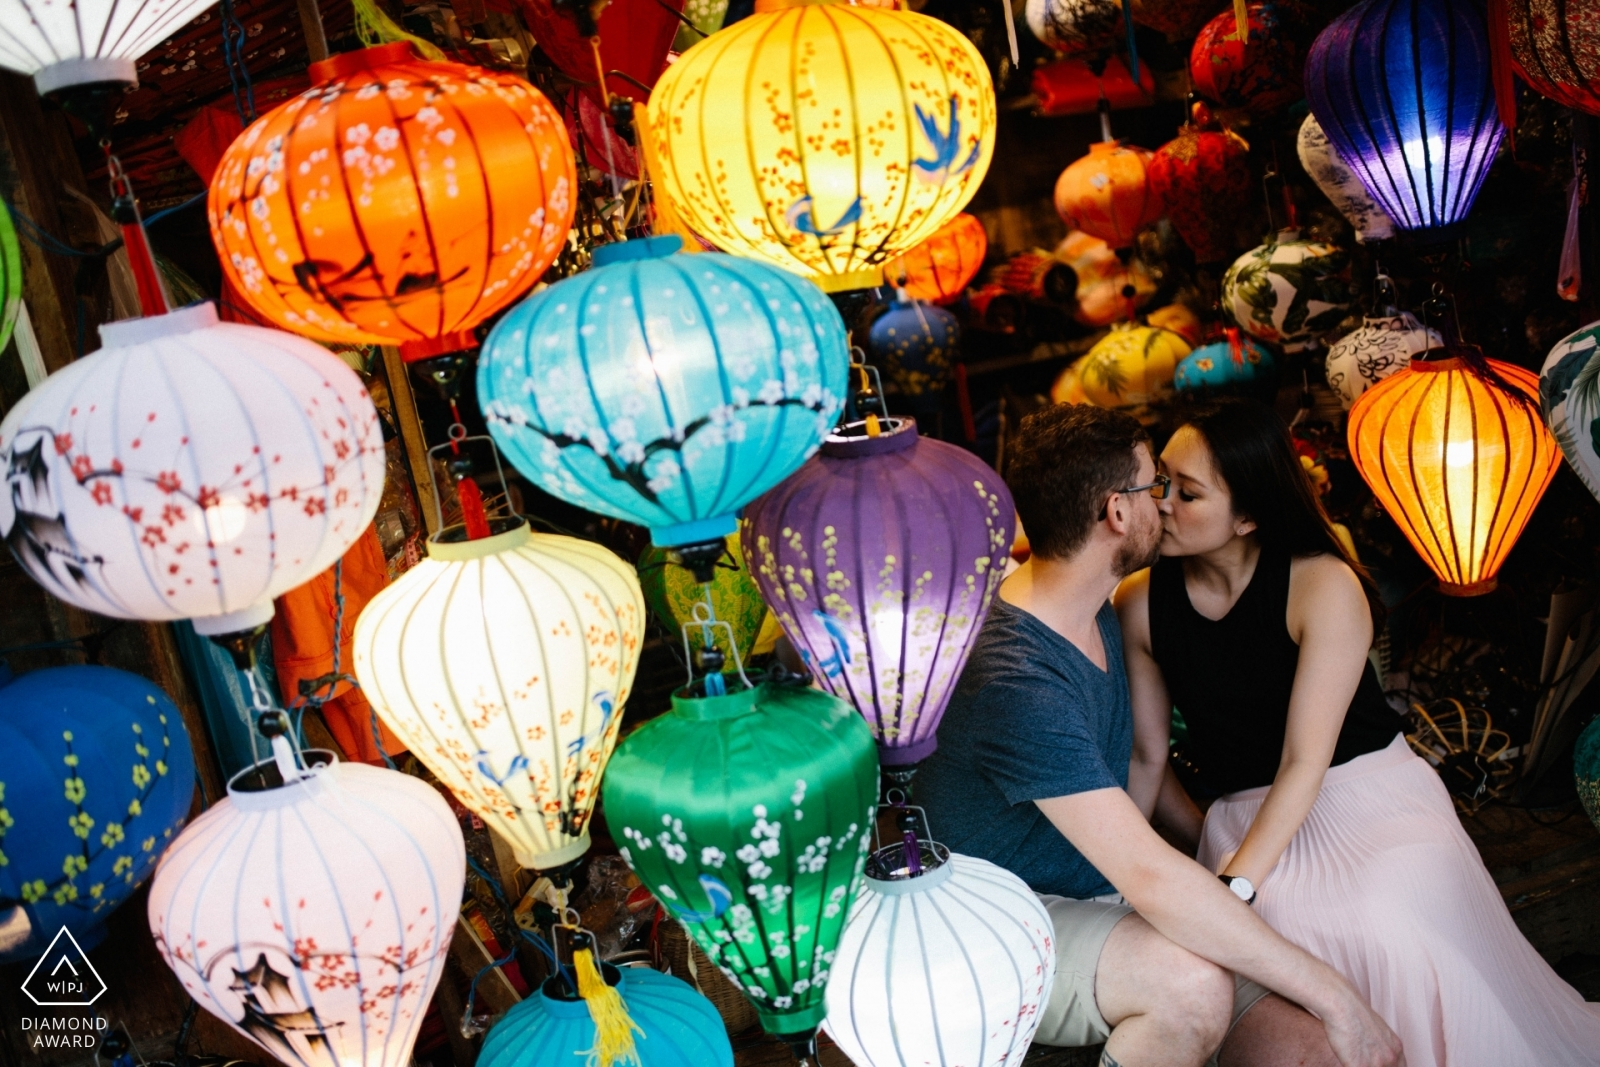 Pre-wedding photoshoot in Vietnam